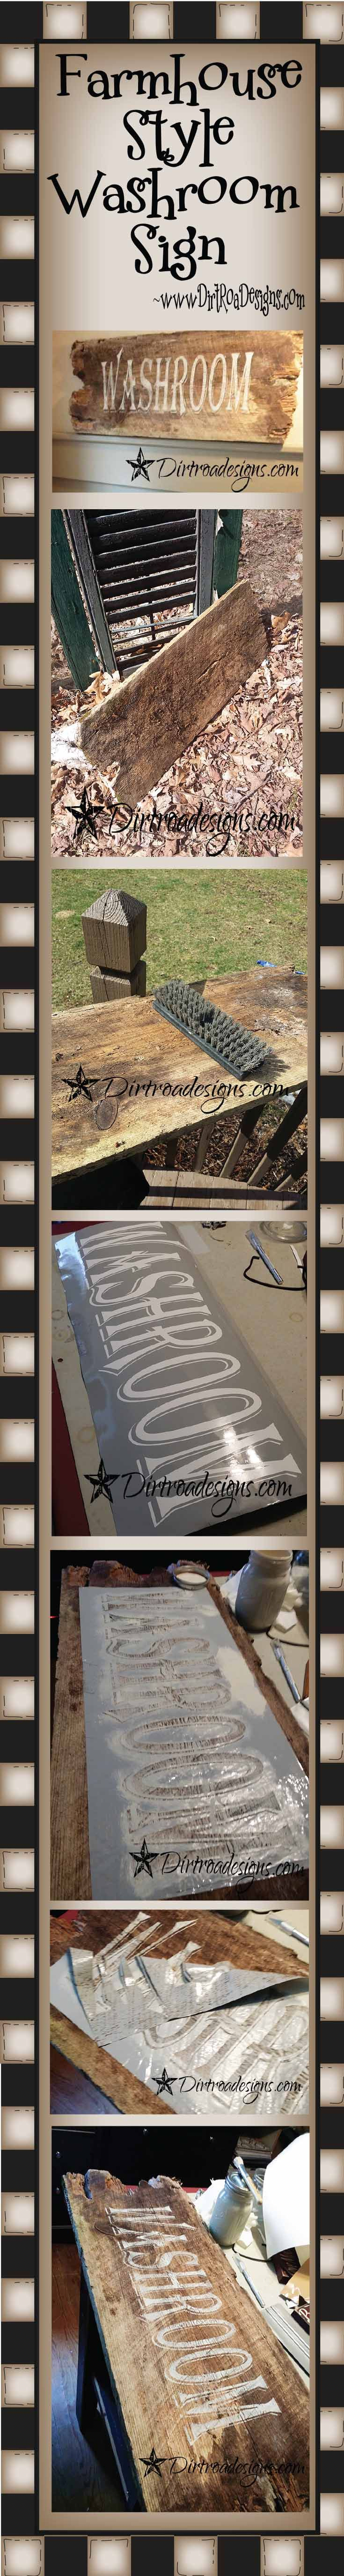 Farmhouse Style Washroom sign from DIrt Road Designs